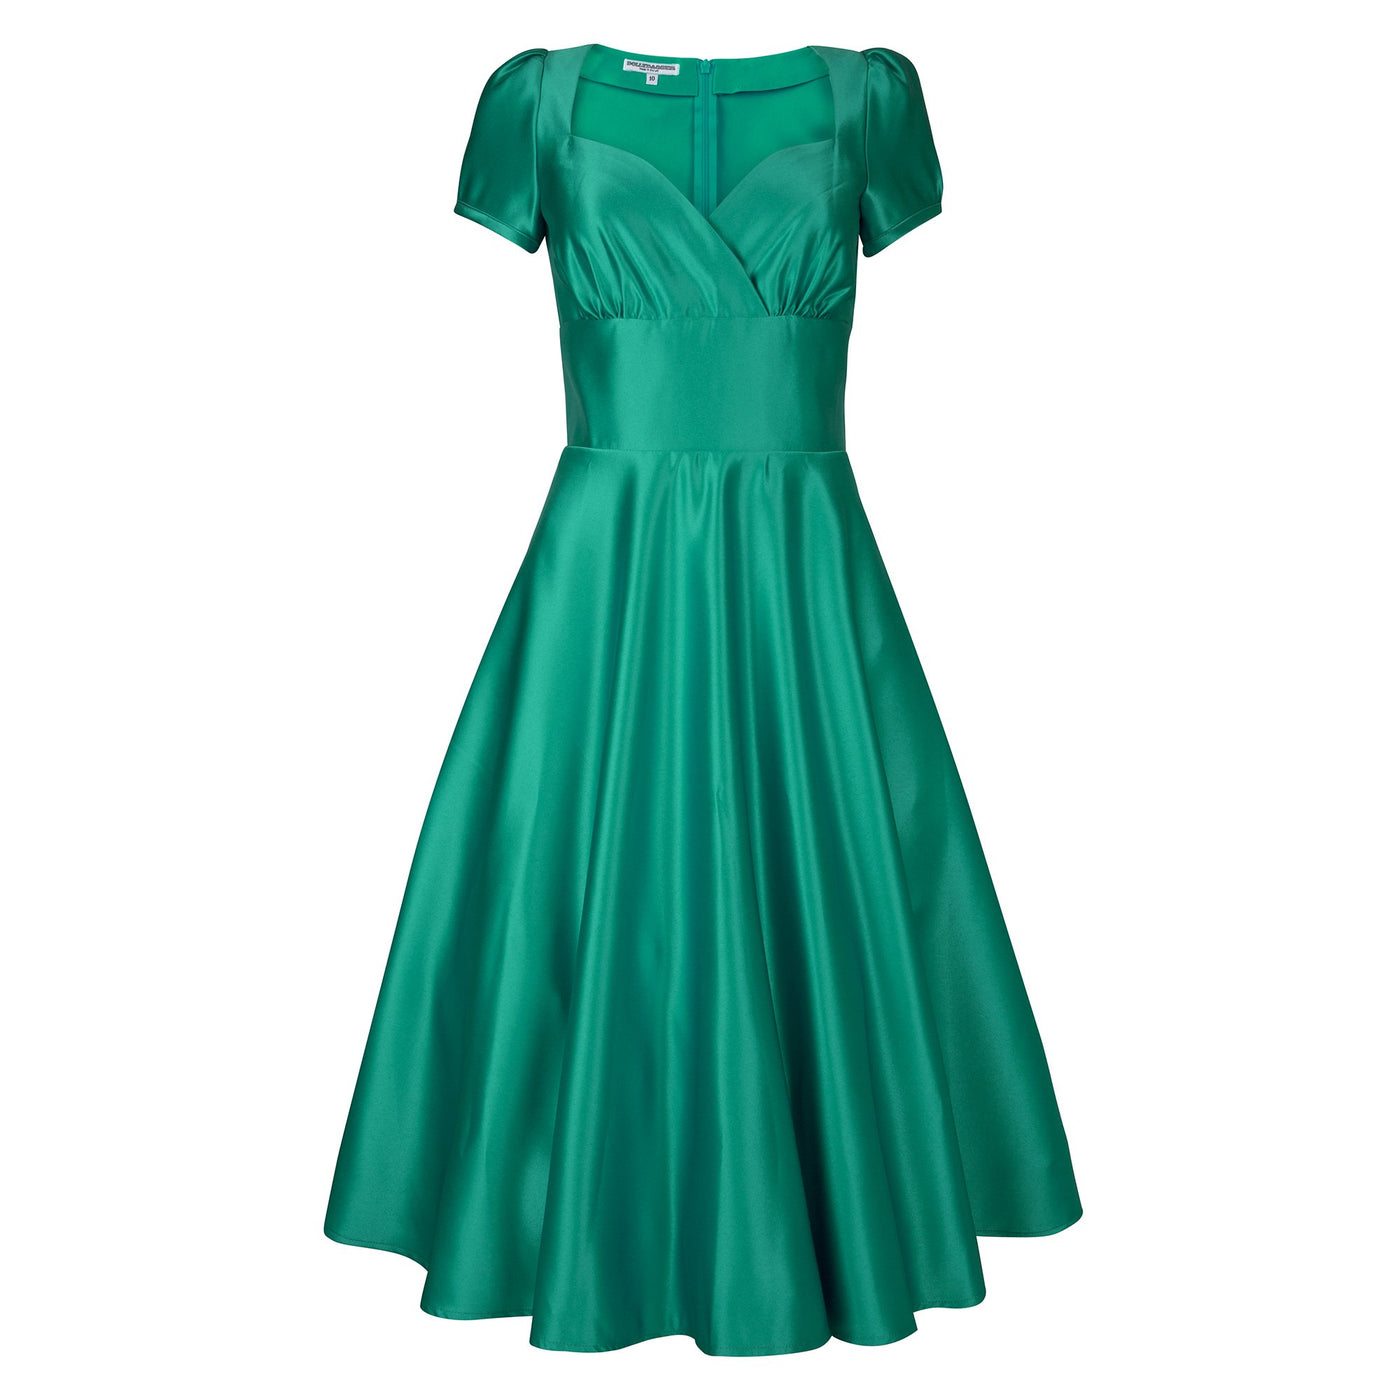 Dollydagger Vivien Emerald Green Satin Dress